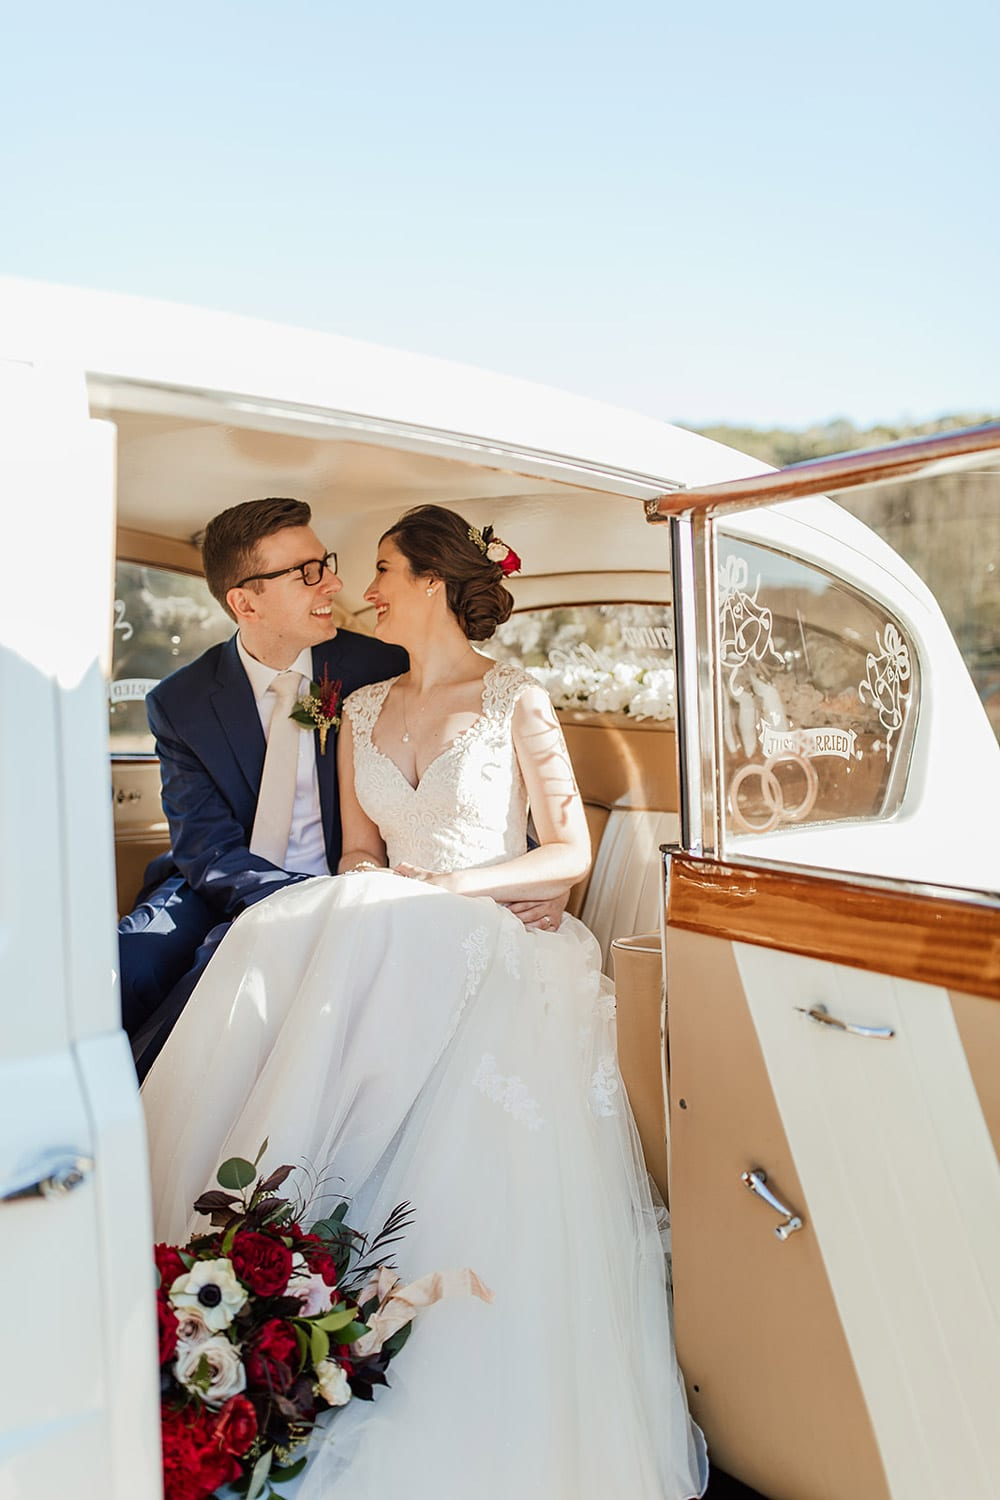 Bride and groom sit in car during send-off